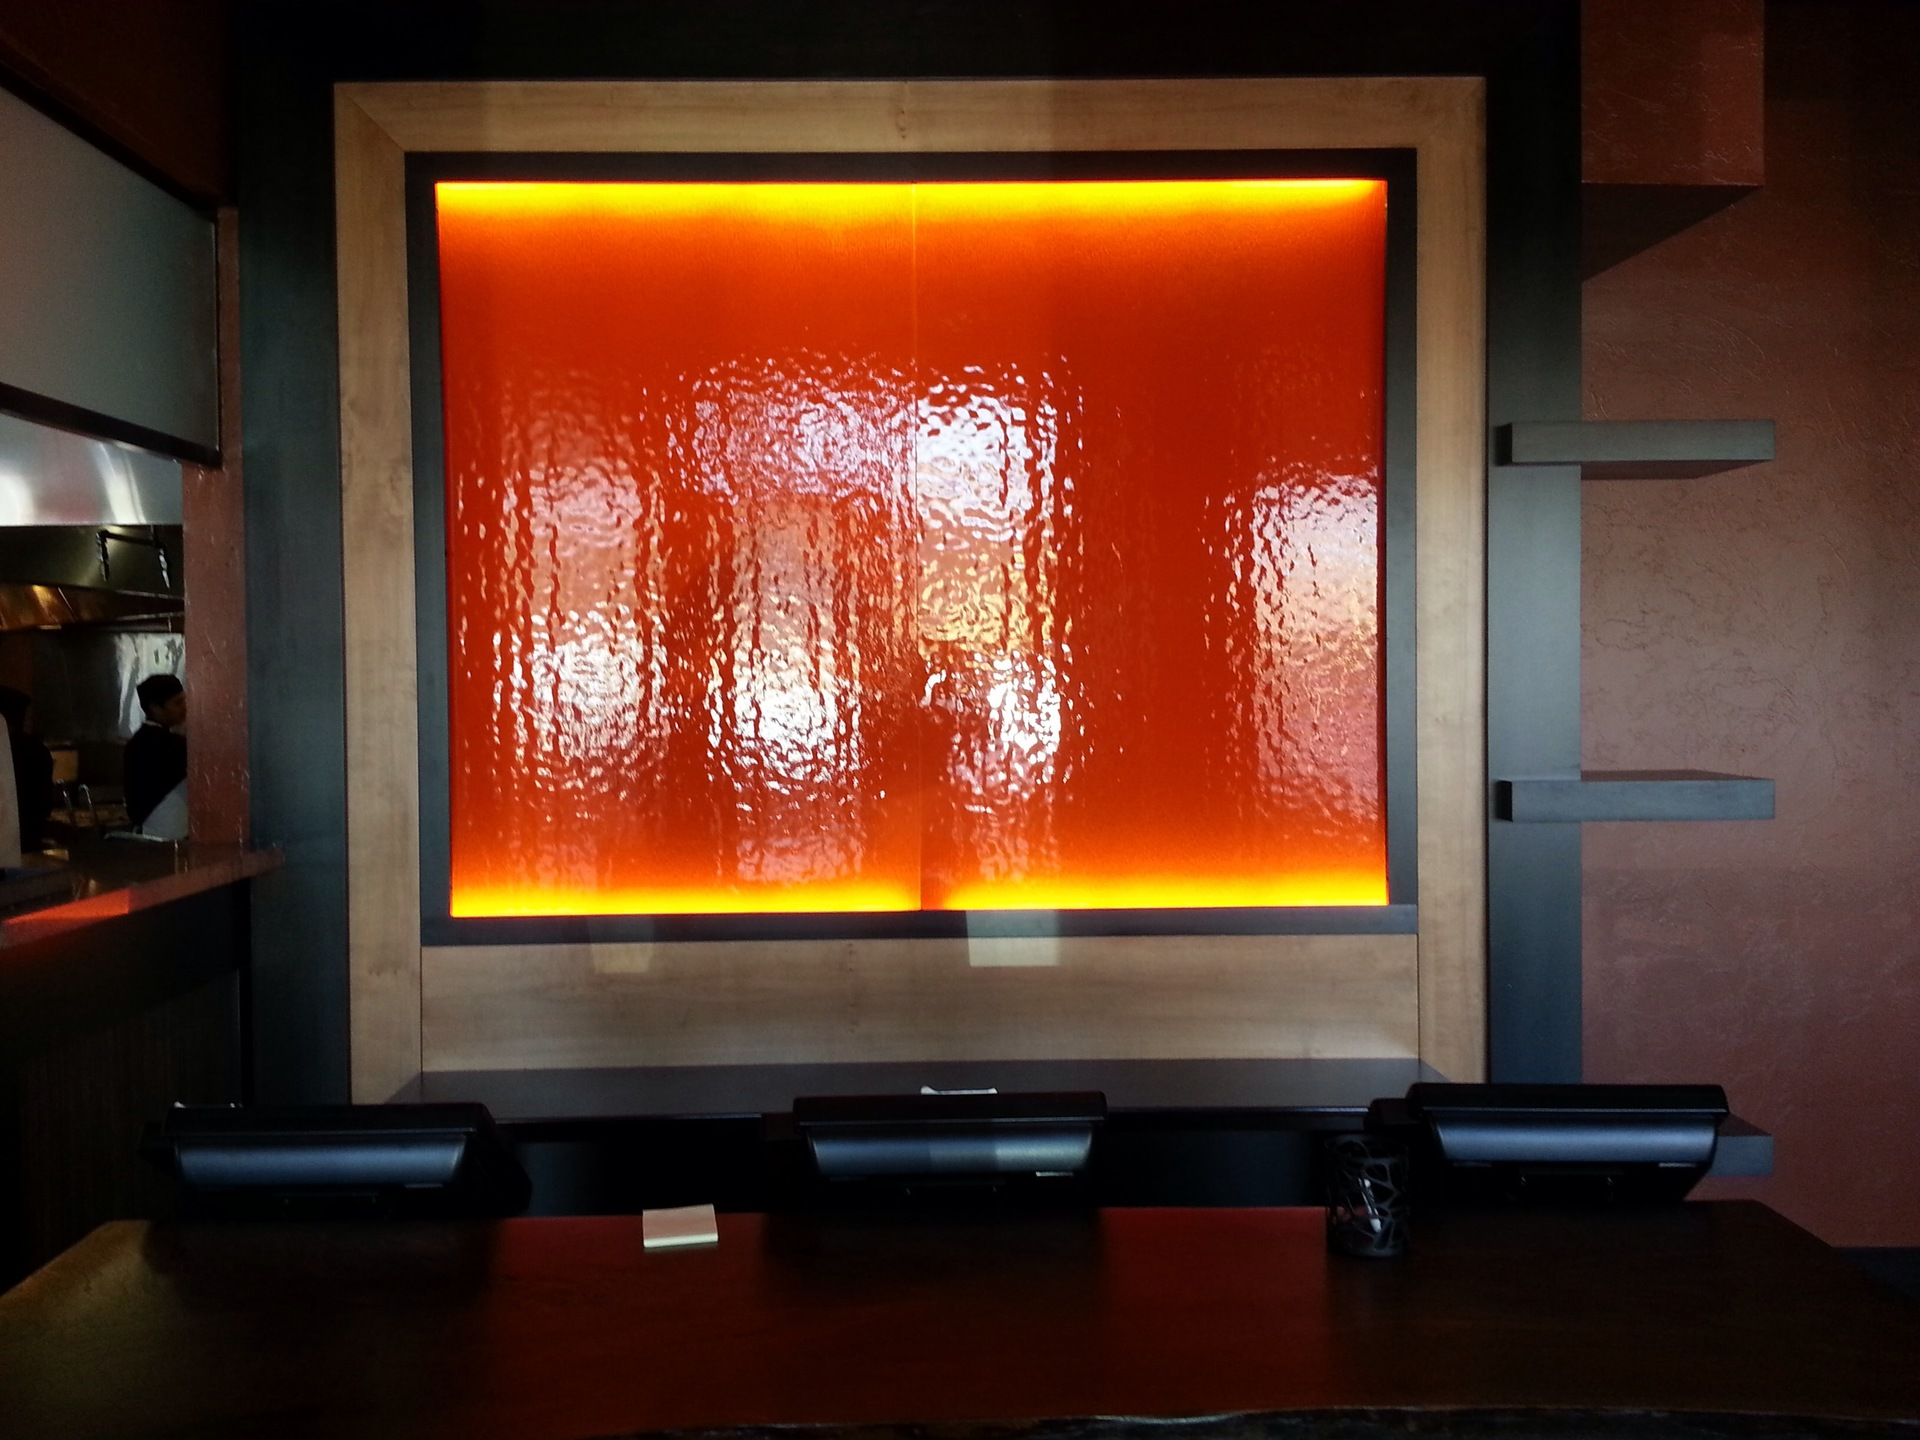 Denver Glass Interiors offer a tantalizing palette for your choice of color and pattern. We offer simple, one-color painted glass or glass painted with metallic flakes, pearls, stripes, dots, designs, or logos. Whether the item is large or small, DGI measures, cuts, paints, and installs back-painted glass to your exact specifications.